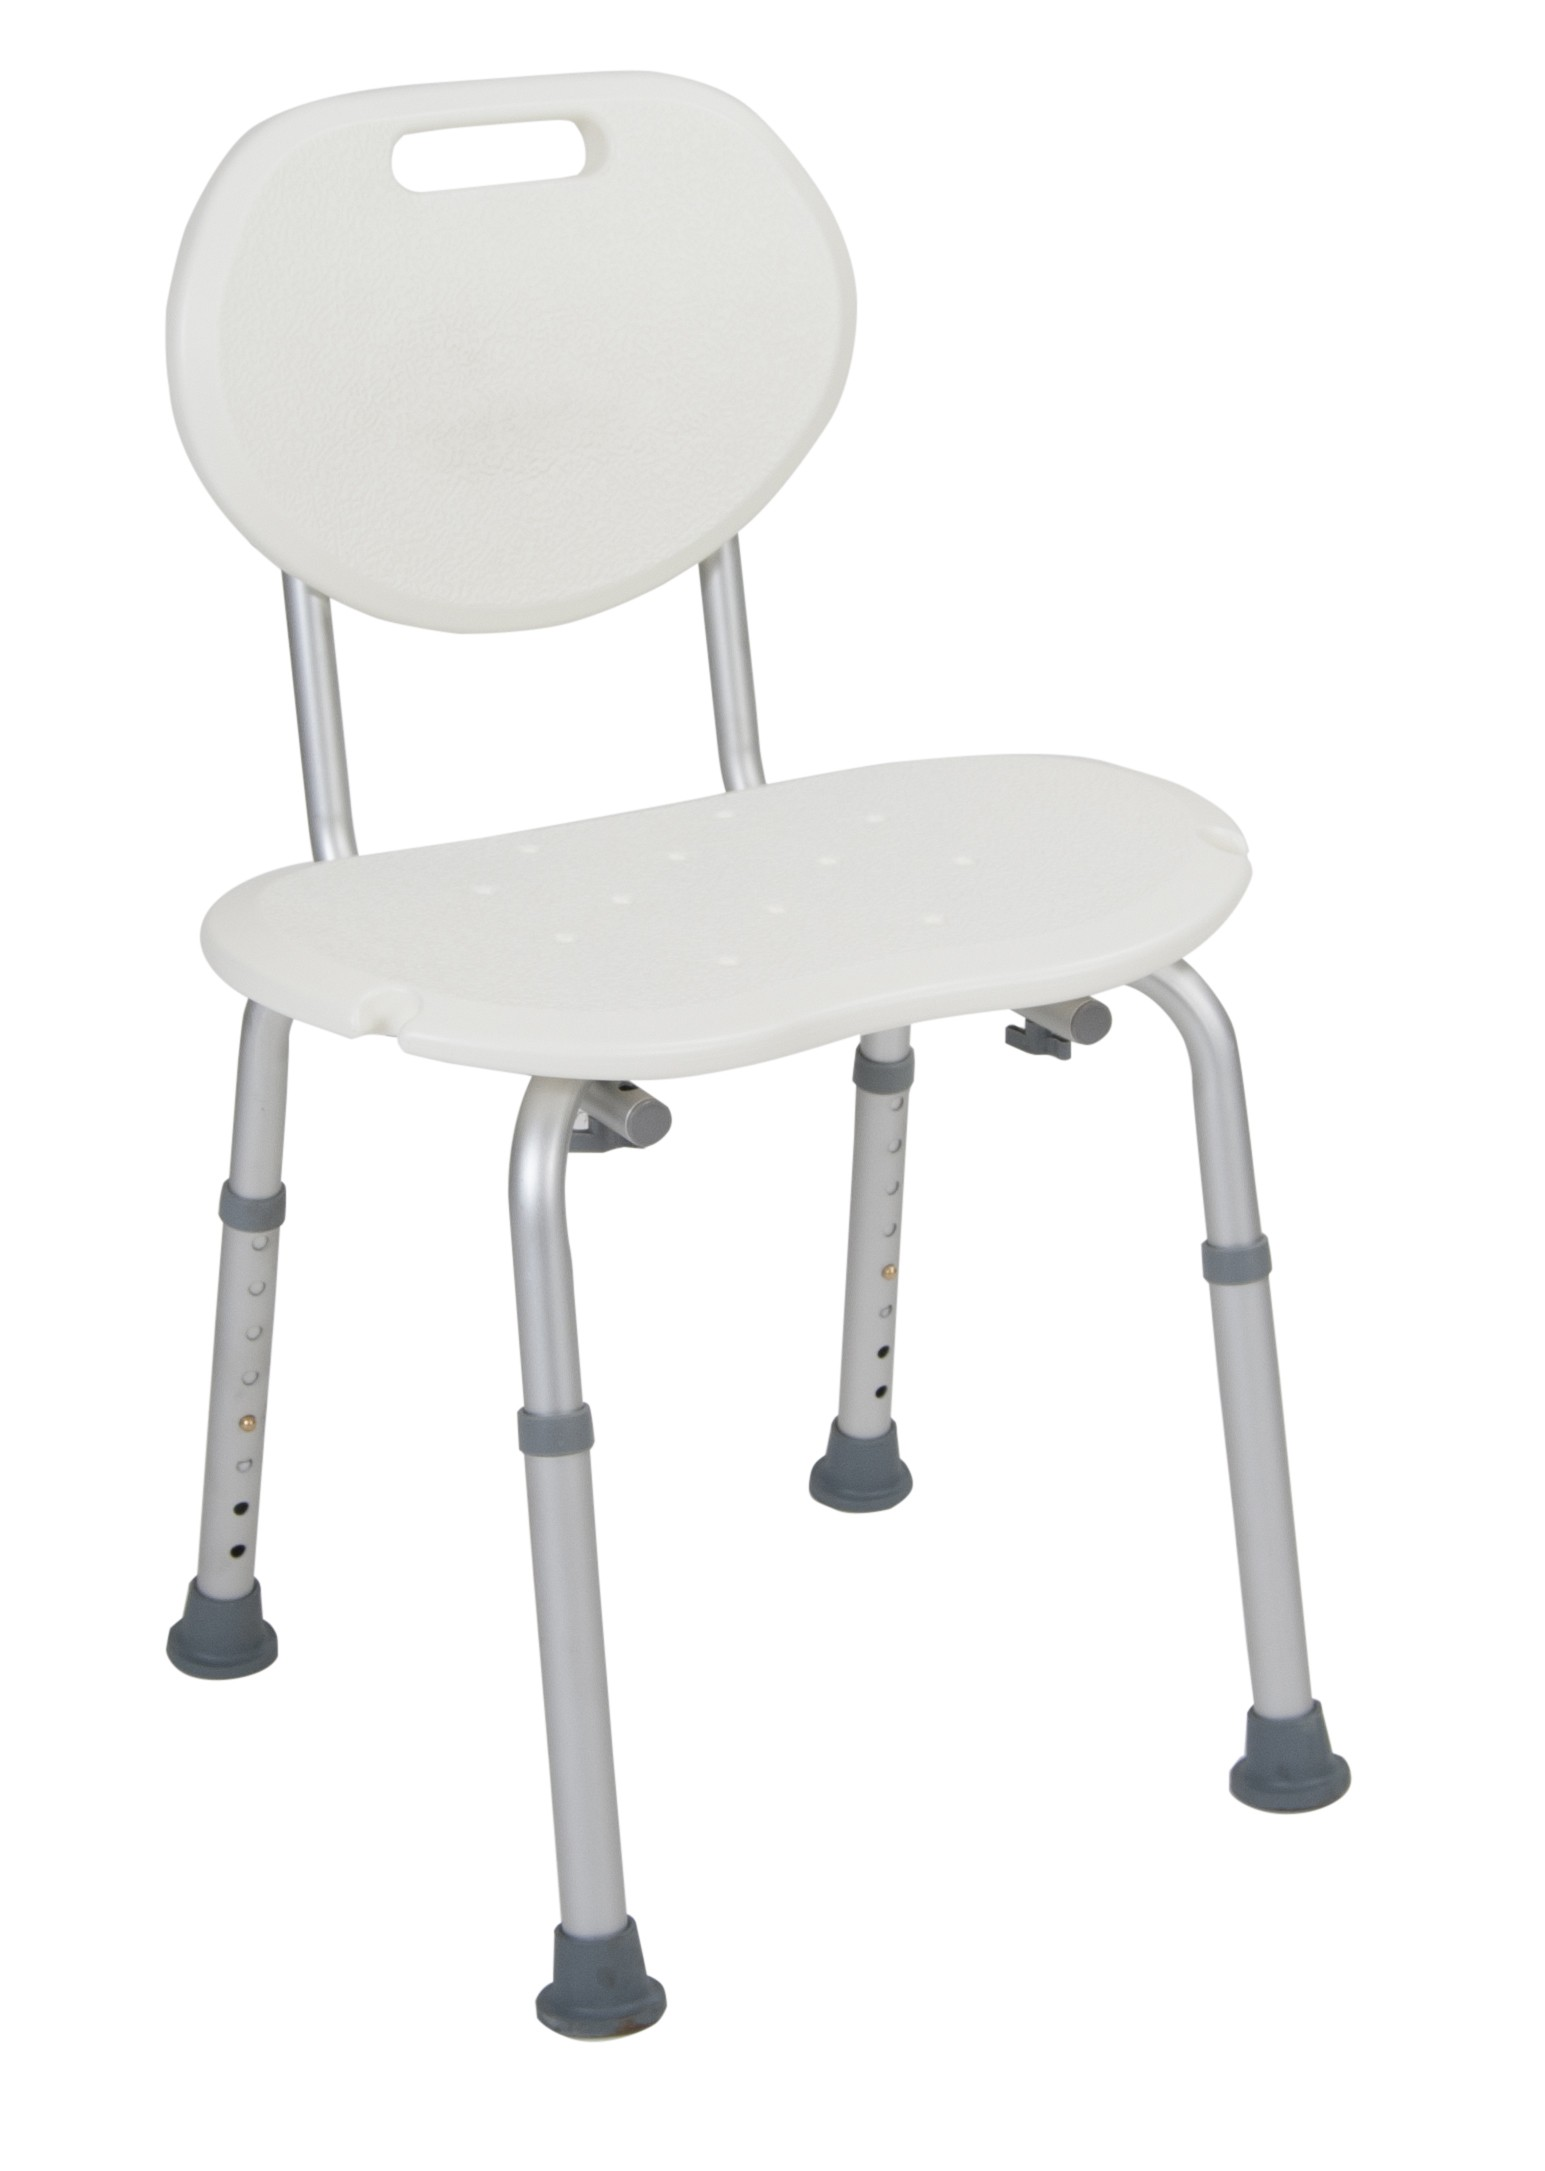 shower_chair_with_oval_back.jpg